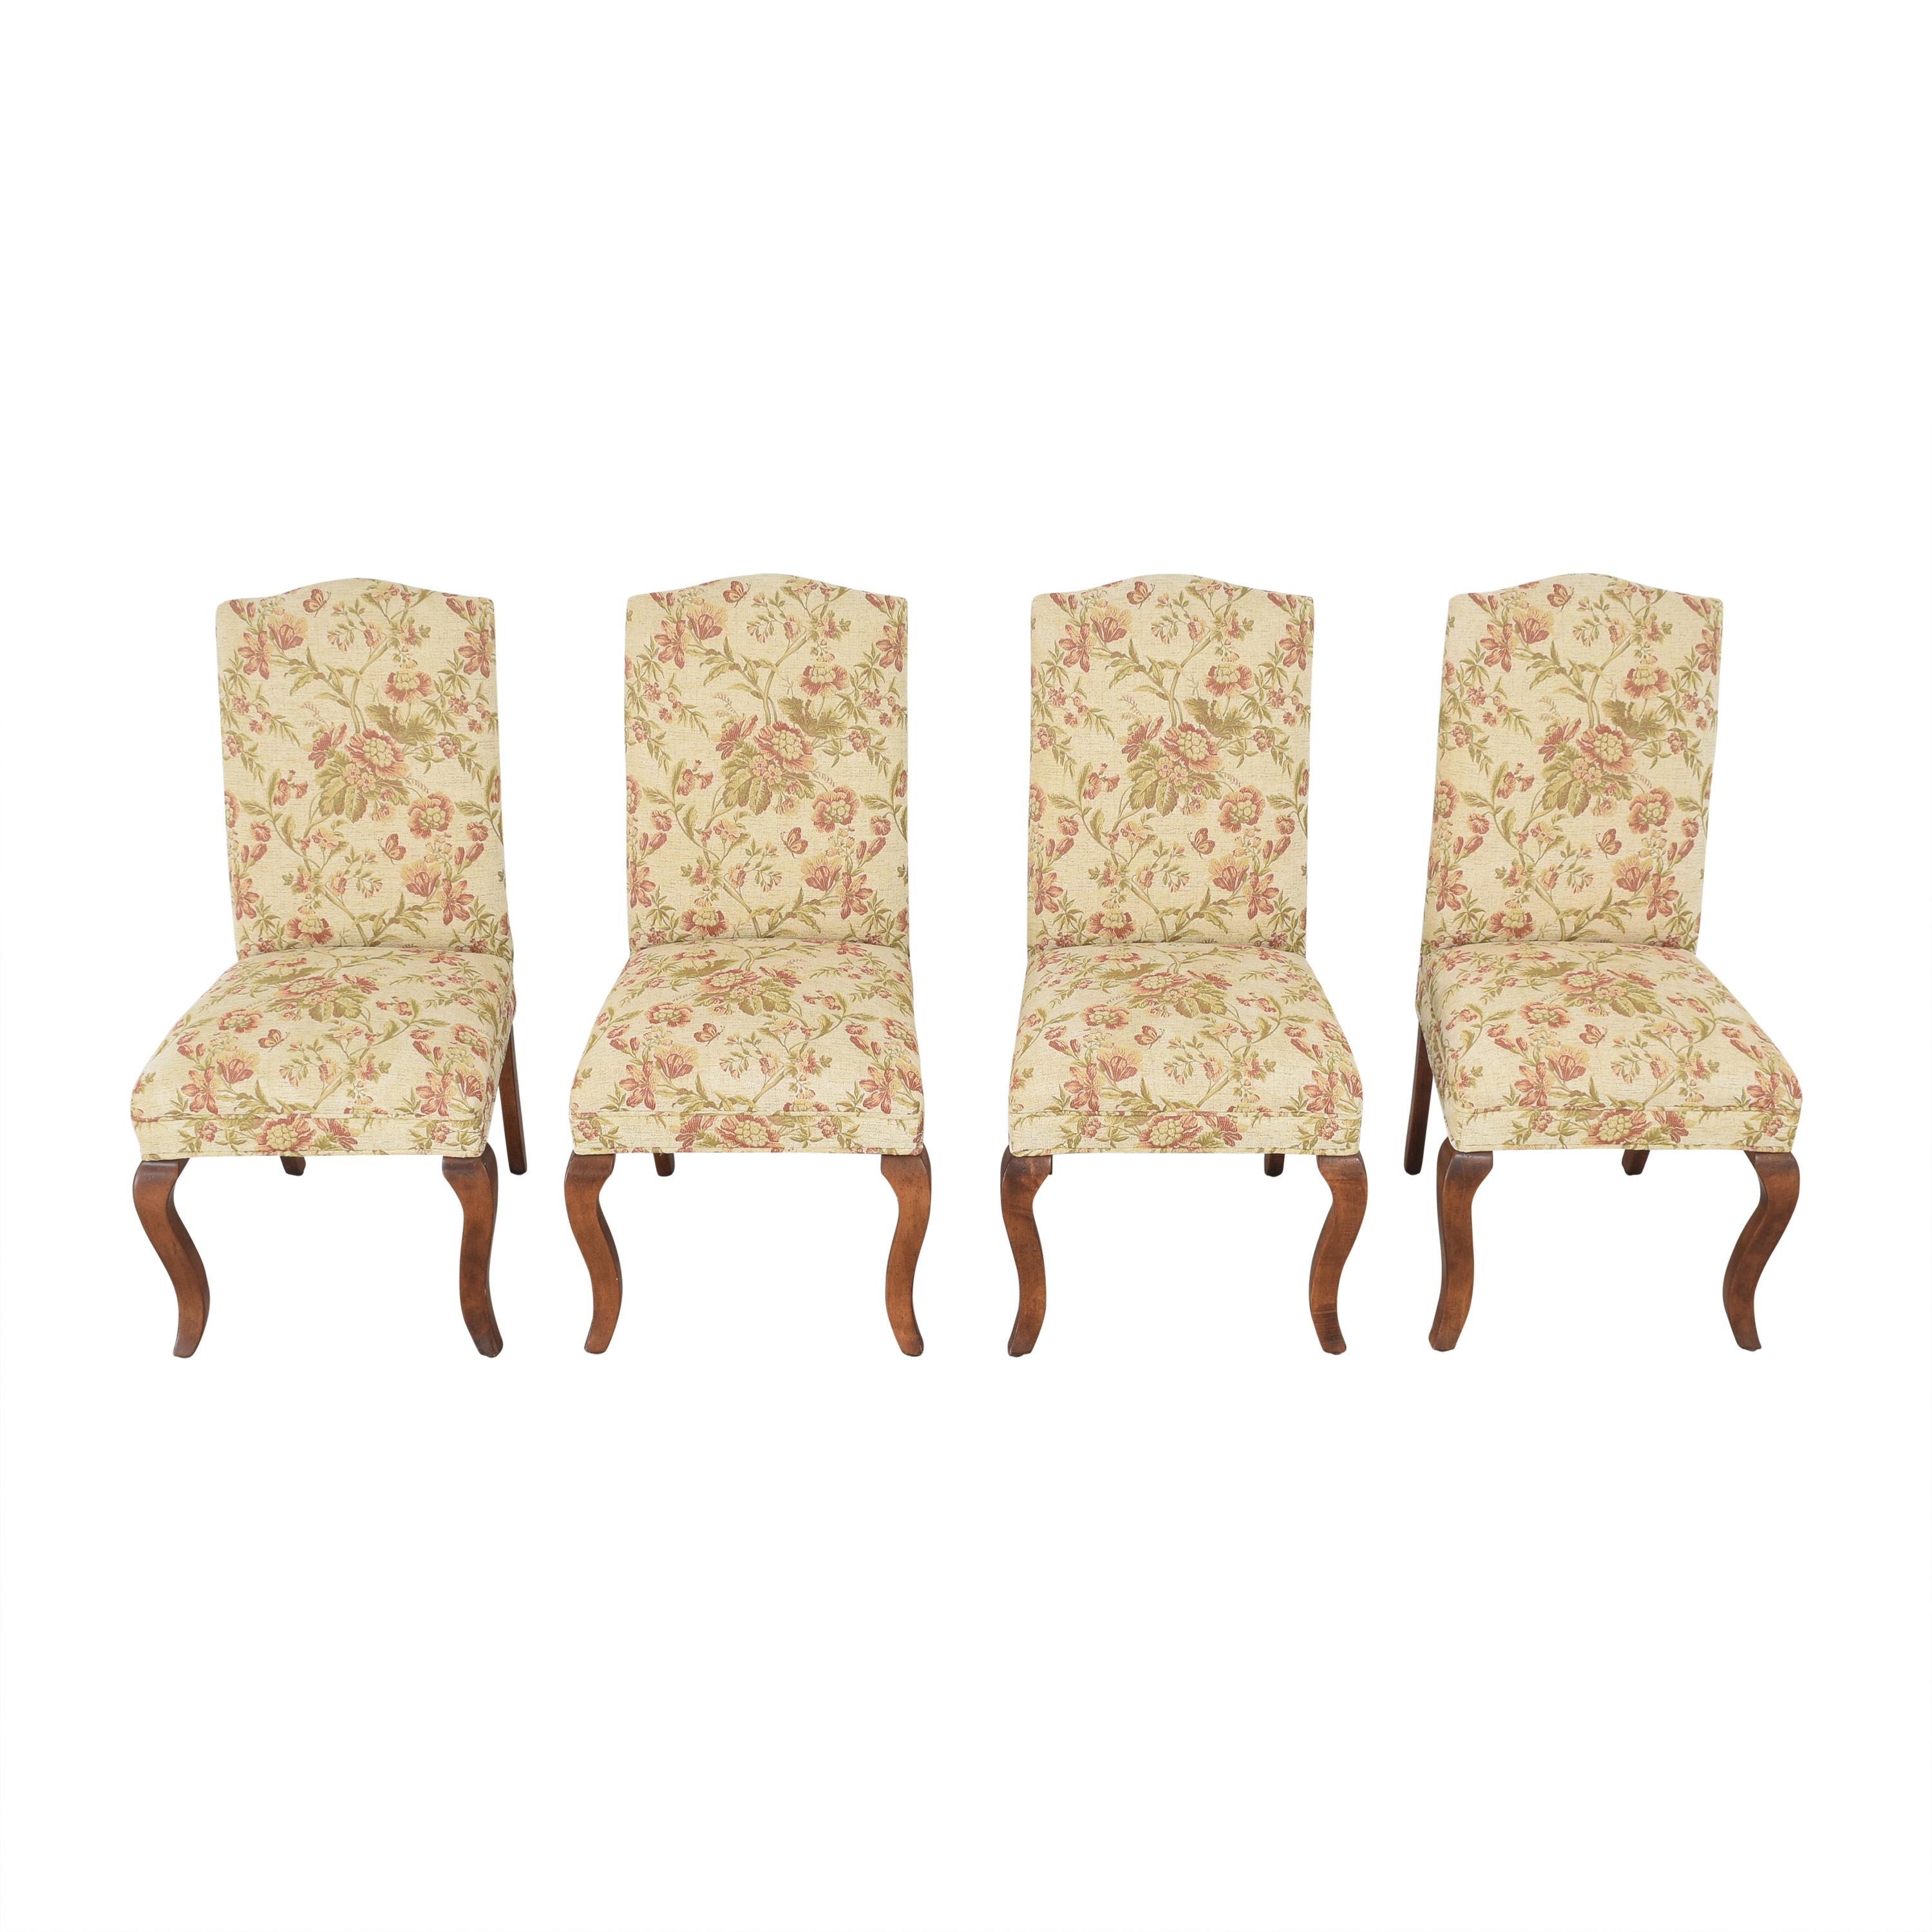 Queen Anne Upholstered Dining Chairs / Dining Chairs